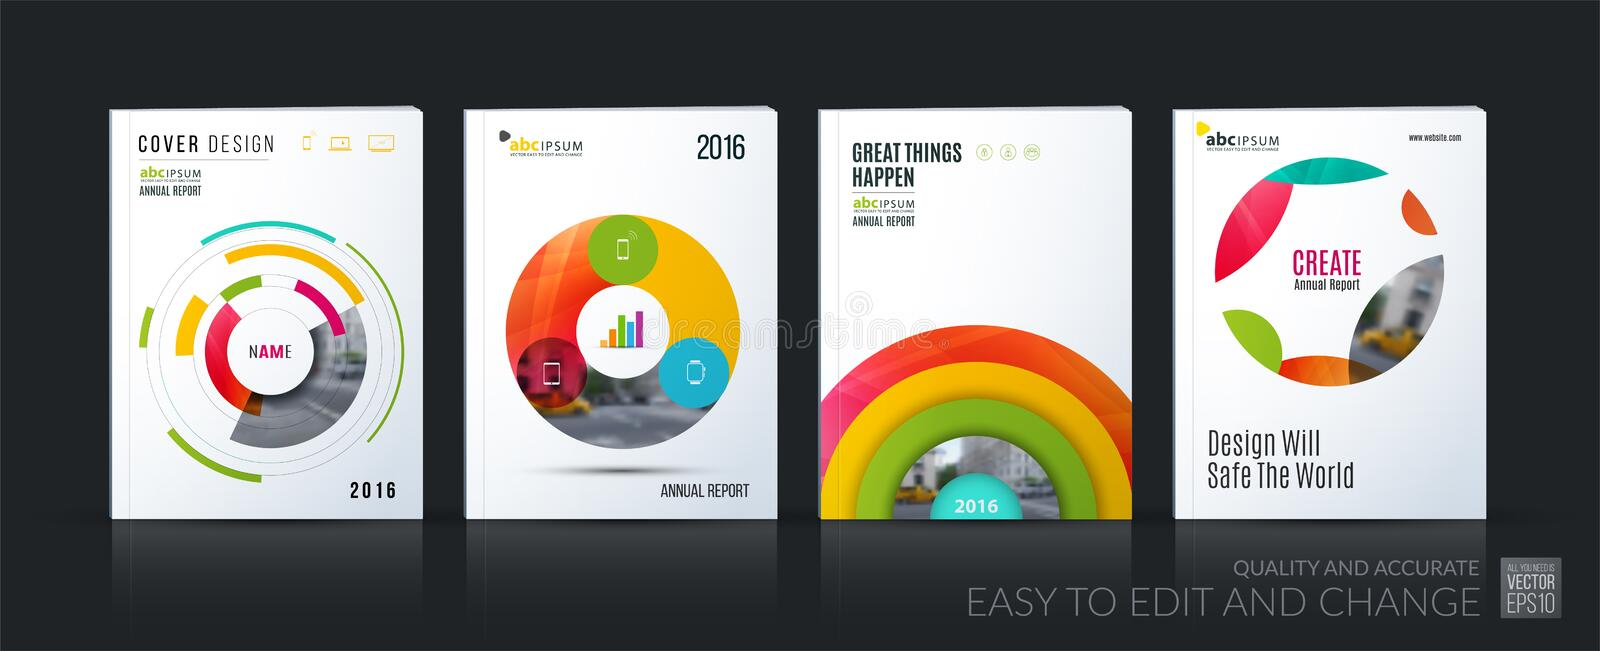 Download Business Vector. Brochure Template Layout, Cover Soft Design Ann Stock Vector - Illustration of home, circle: 83438237